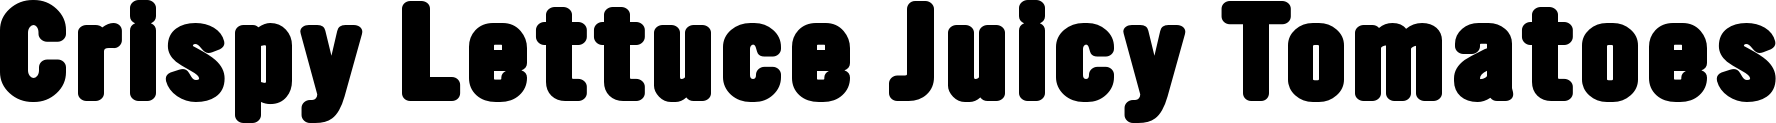 YWFT Ultramagnetic Black